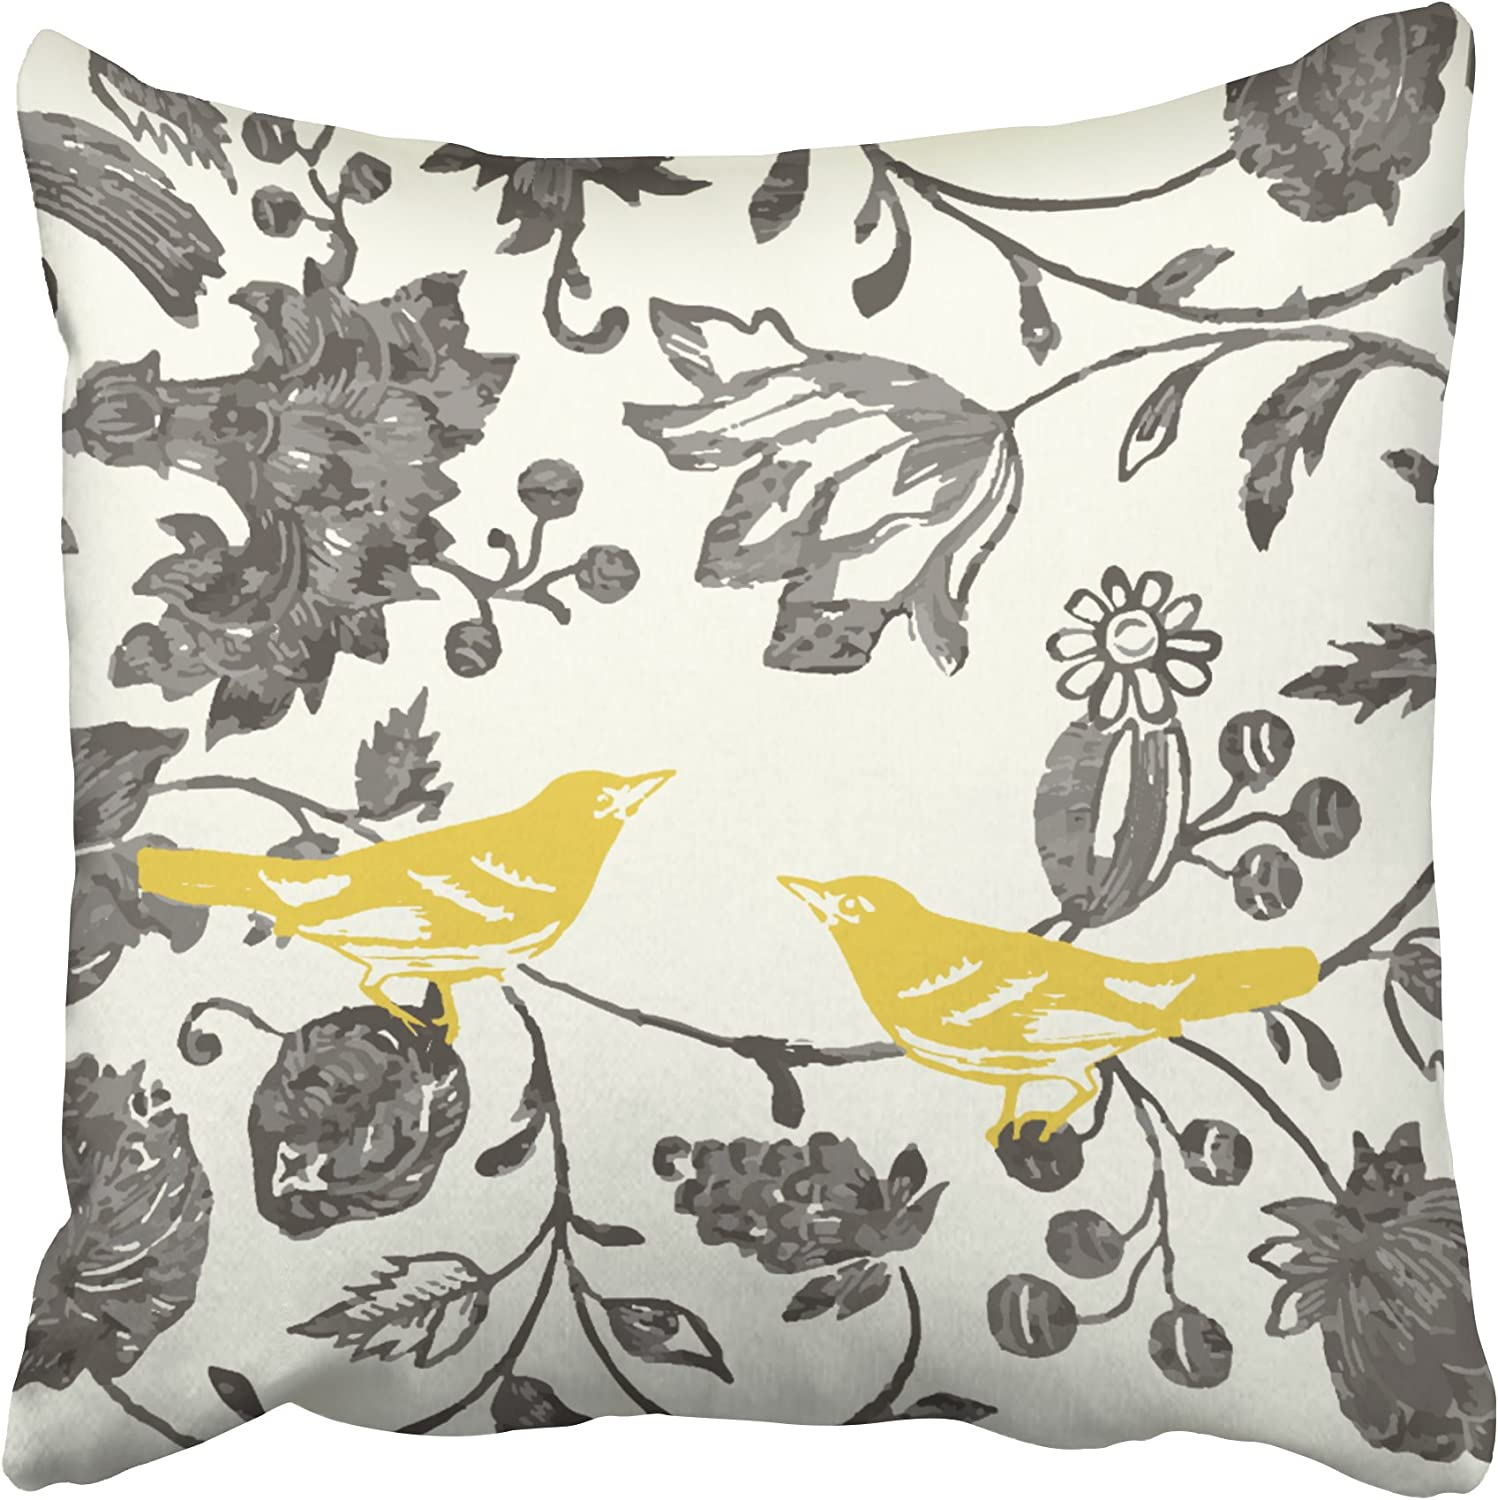 Amazon Com Emvency Decorative Throw Pillow Cover Square Size 16x16 Inches Trendy Yellow Gray Ivory Vintage Floral Bird Lumbar Pillowcase With Hidden Zipper Decor Cushion Gift For Holiday Sofa Bed Home Kitchen